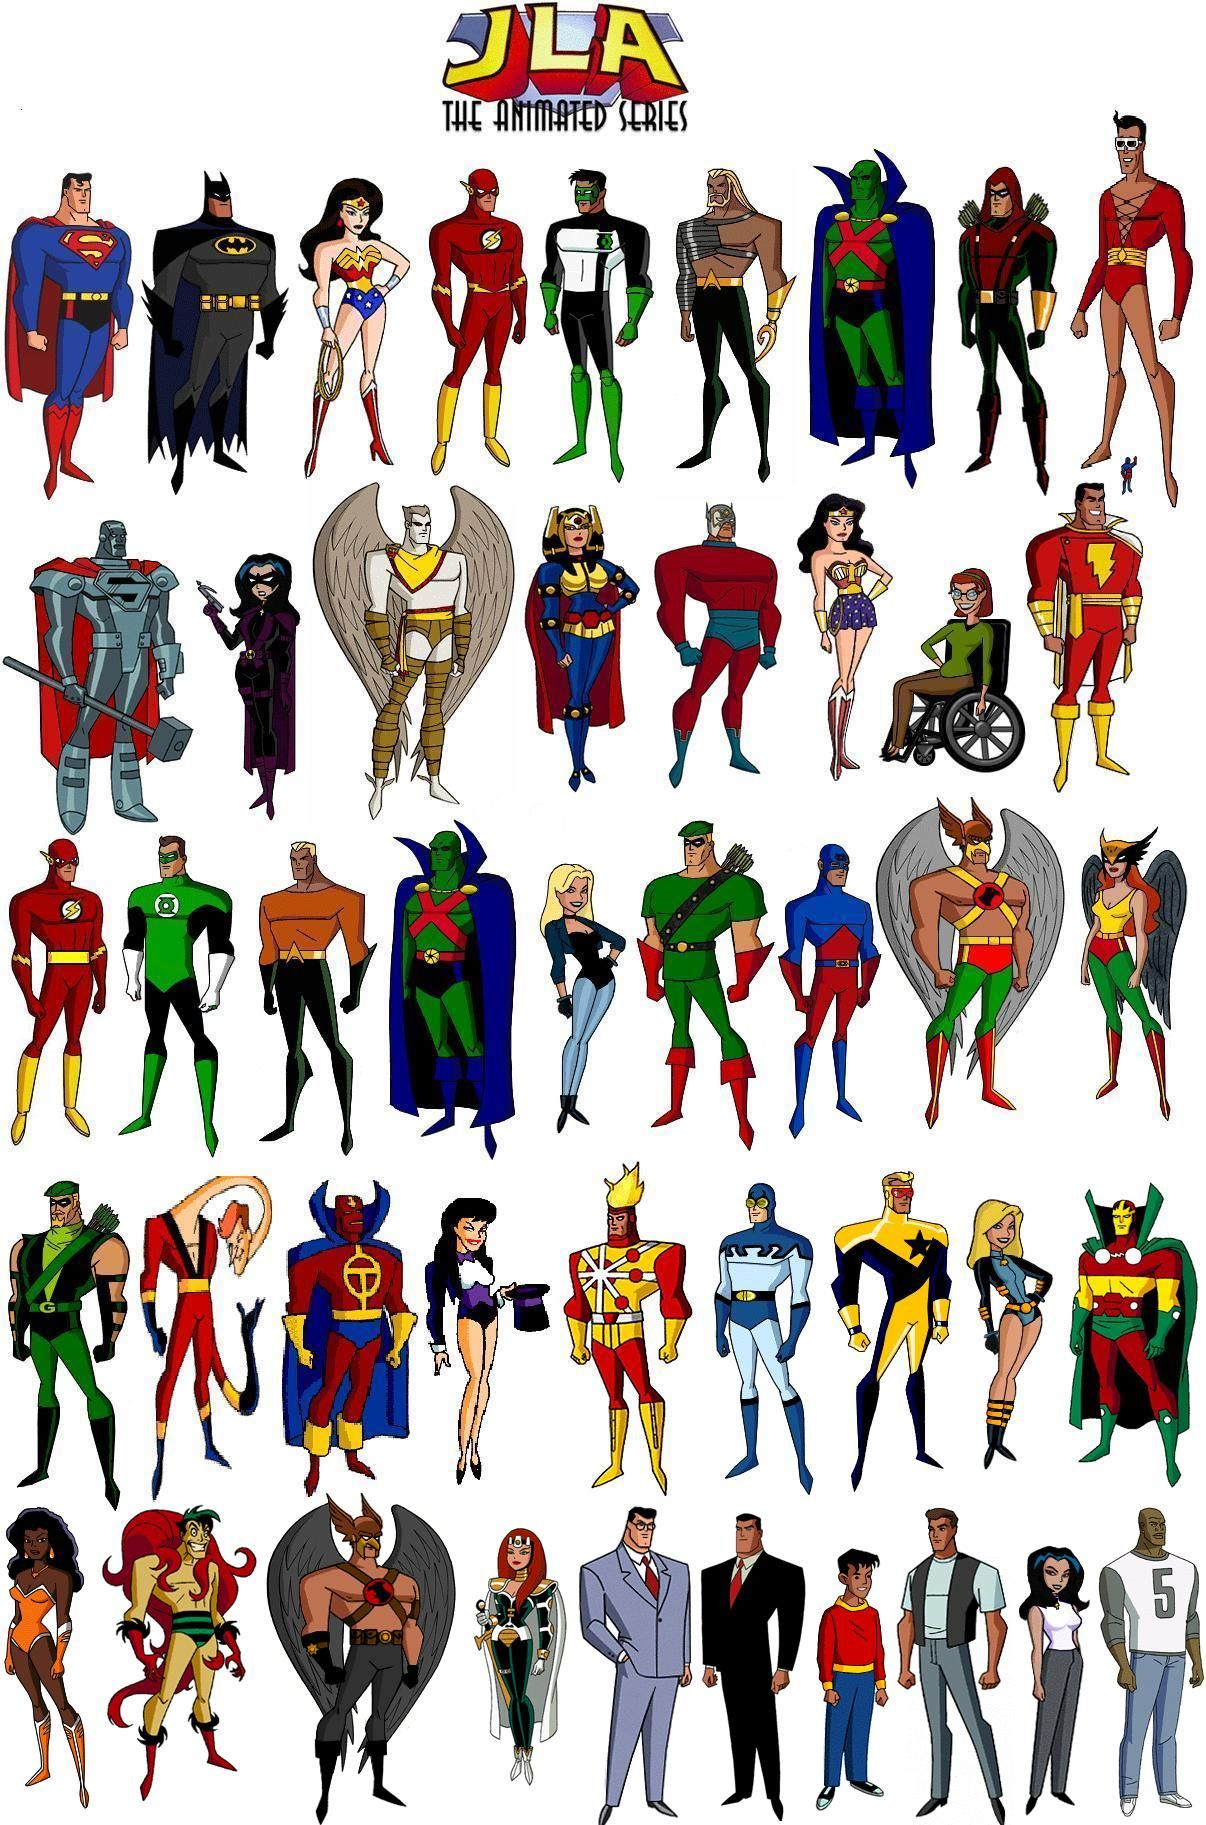 JUSTICE LEAGUE UNLIMITED by Alexander514 on DeviantArt |Justice League Unlimited Characters